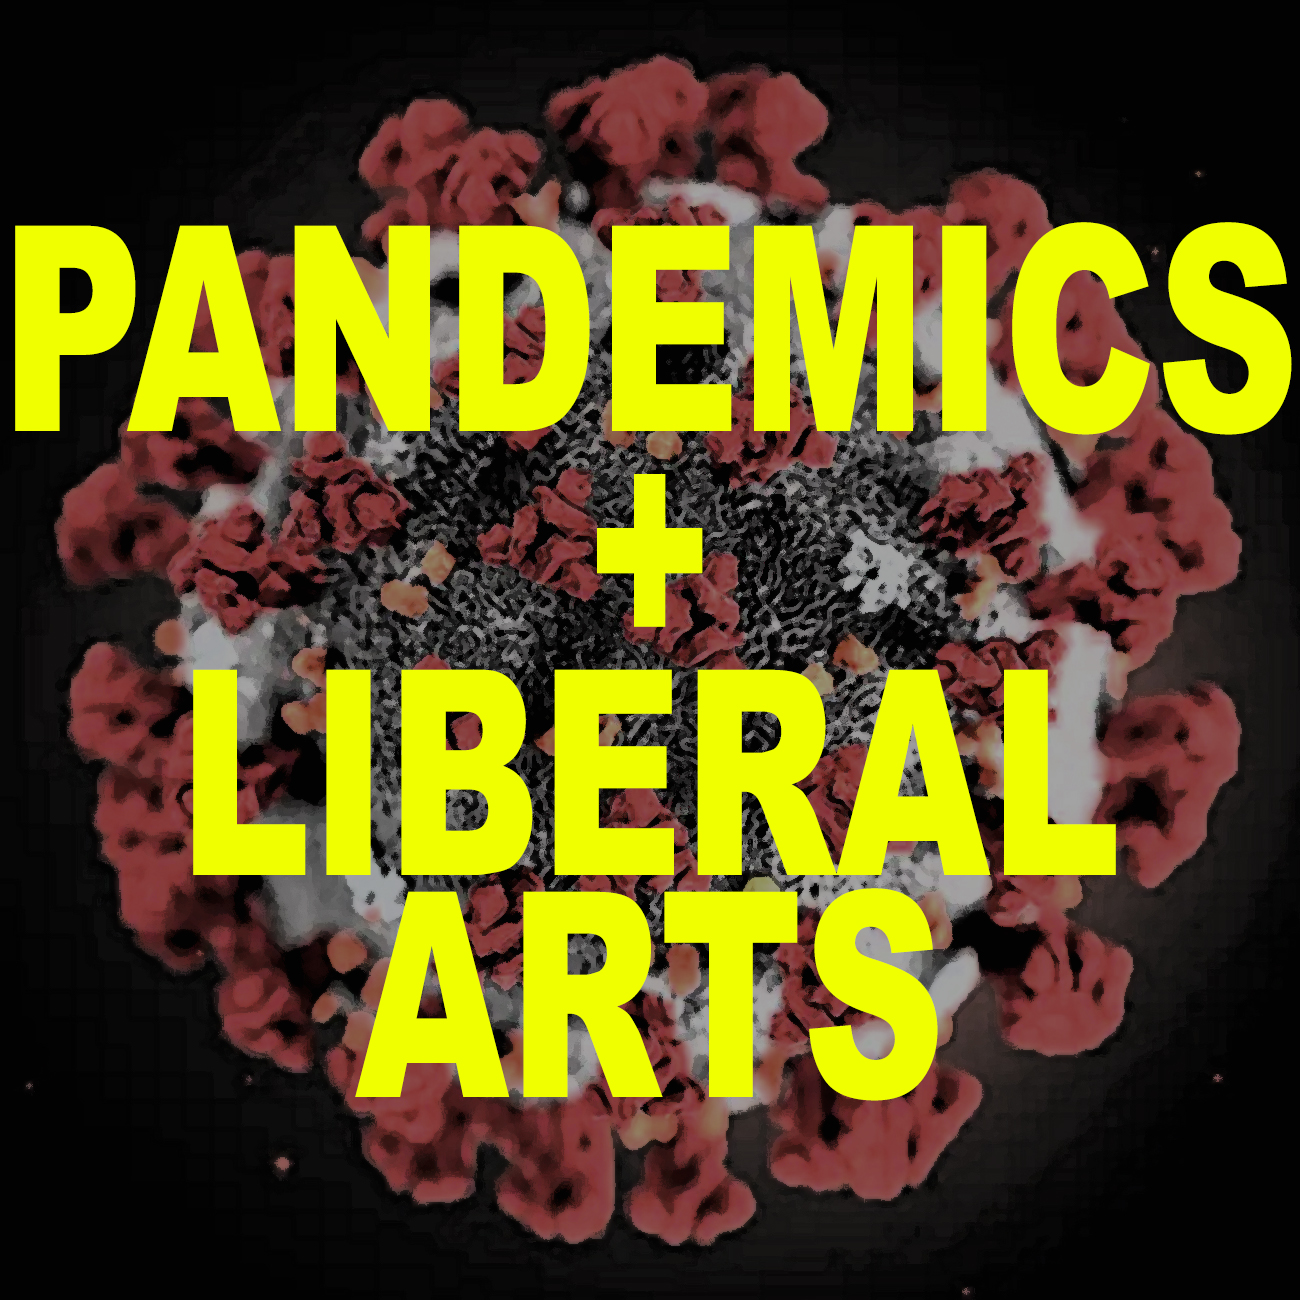 Wednesday's Podcast: Art and Pandemics